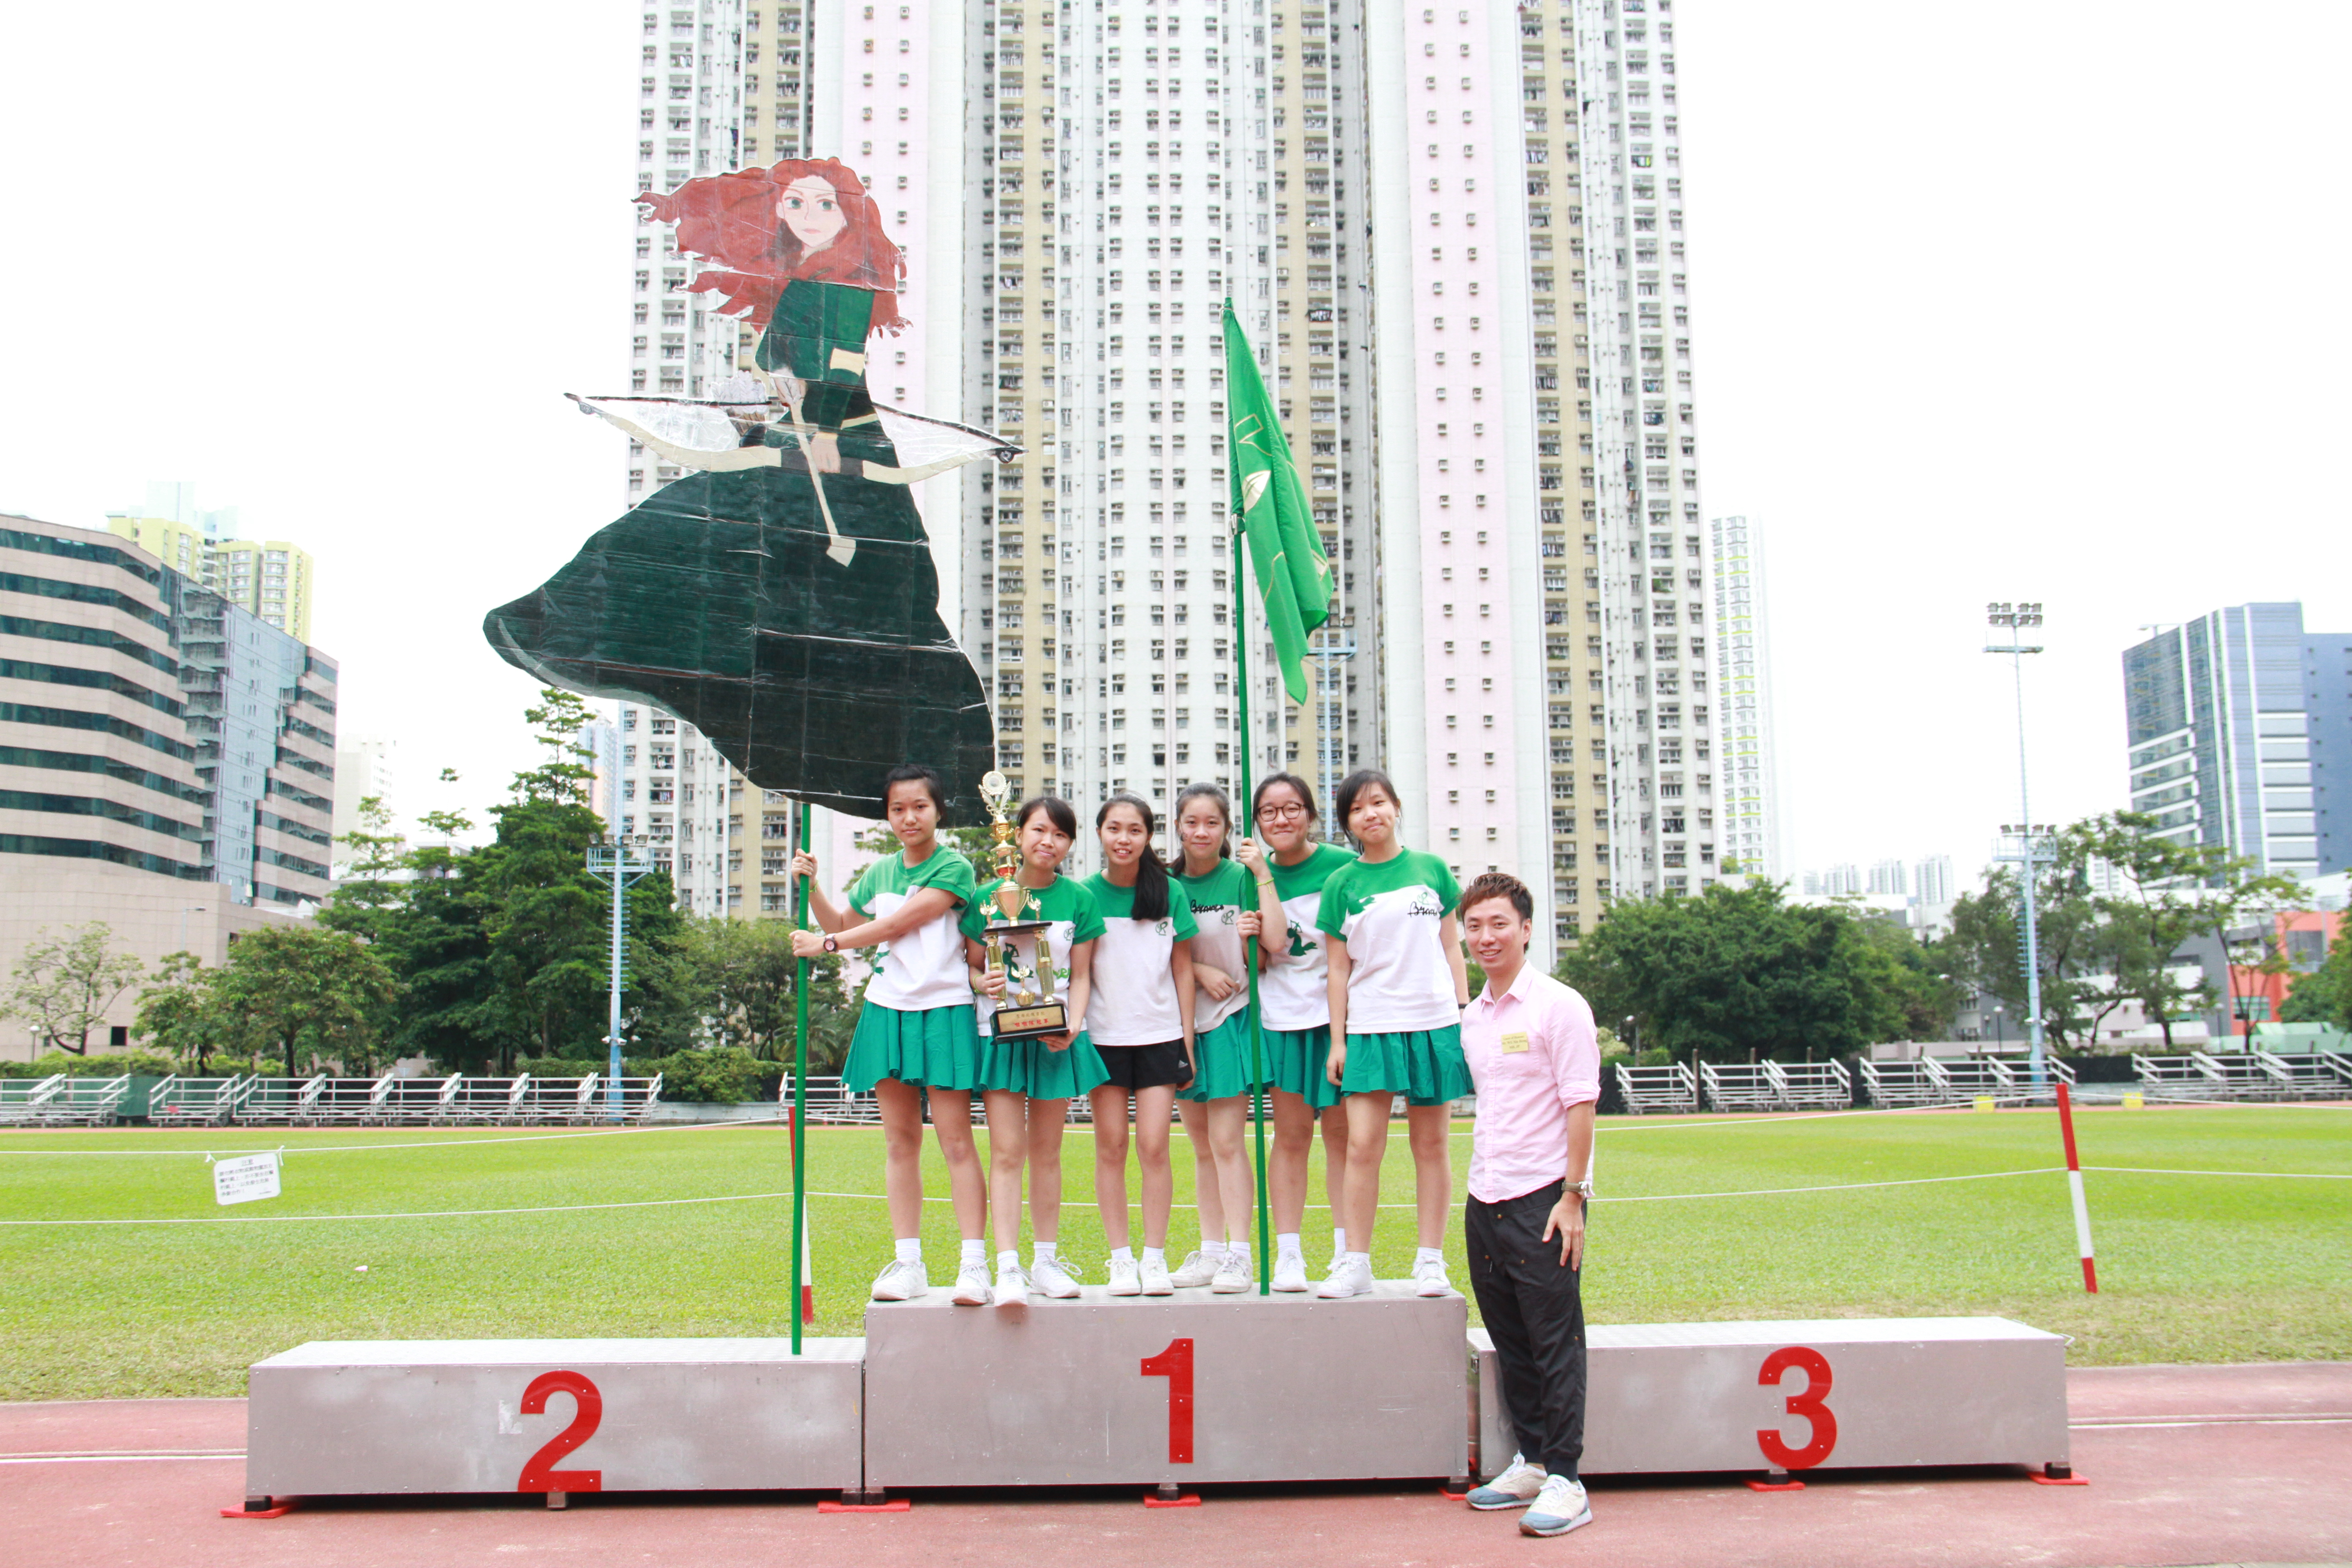 Cheering Team Champion Green House